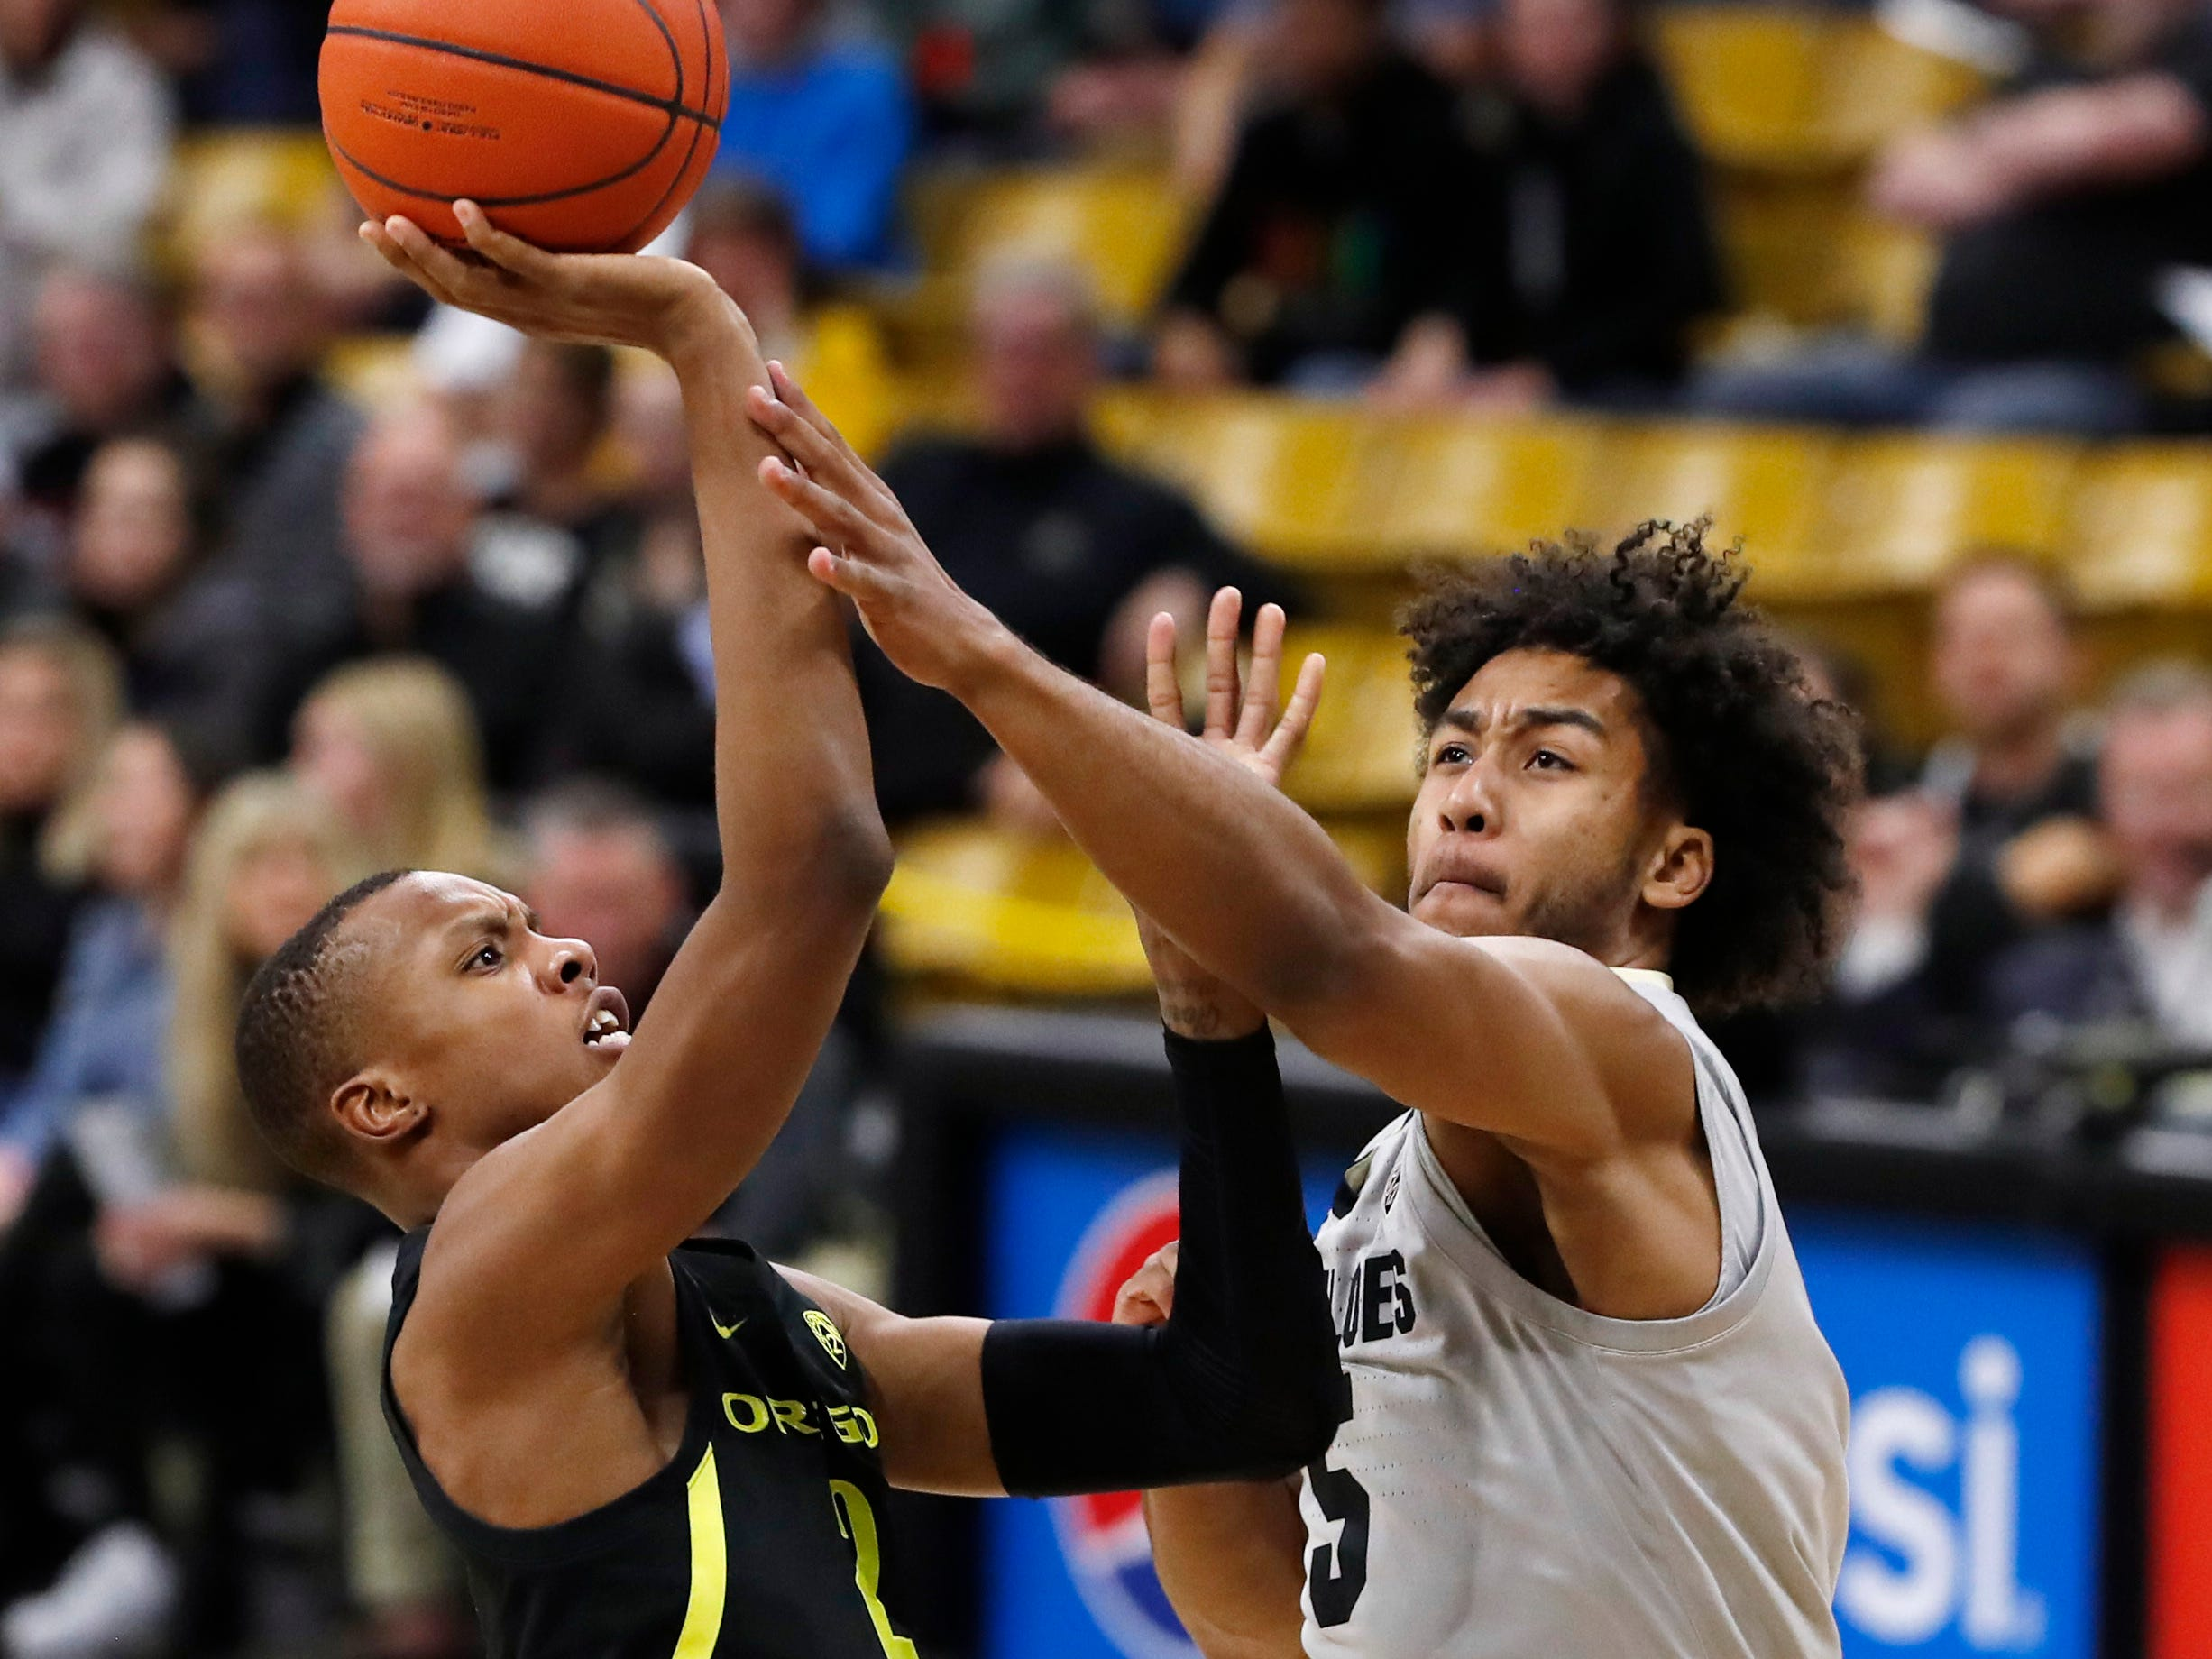 Oregon forward Louis King, left, goes up for a basket as Colorado guard D'Shawn Schwartz defends in the first half of an NCAA college basketball game Saturday, Feb. 2, 2019.